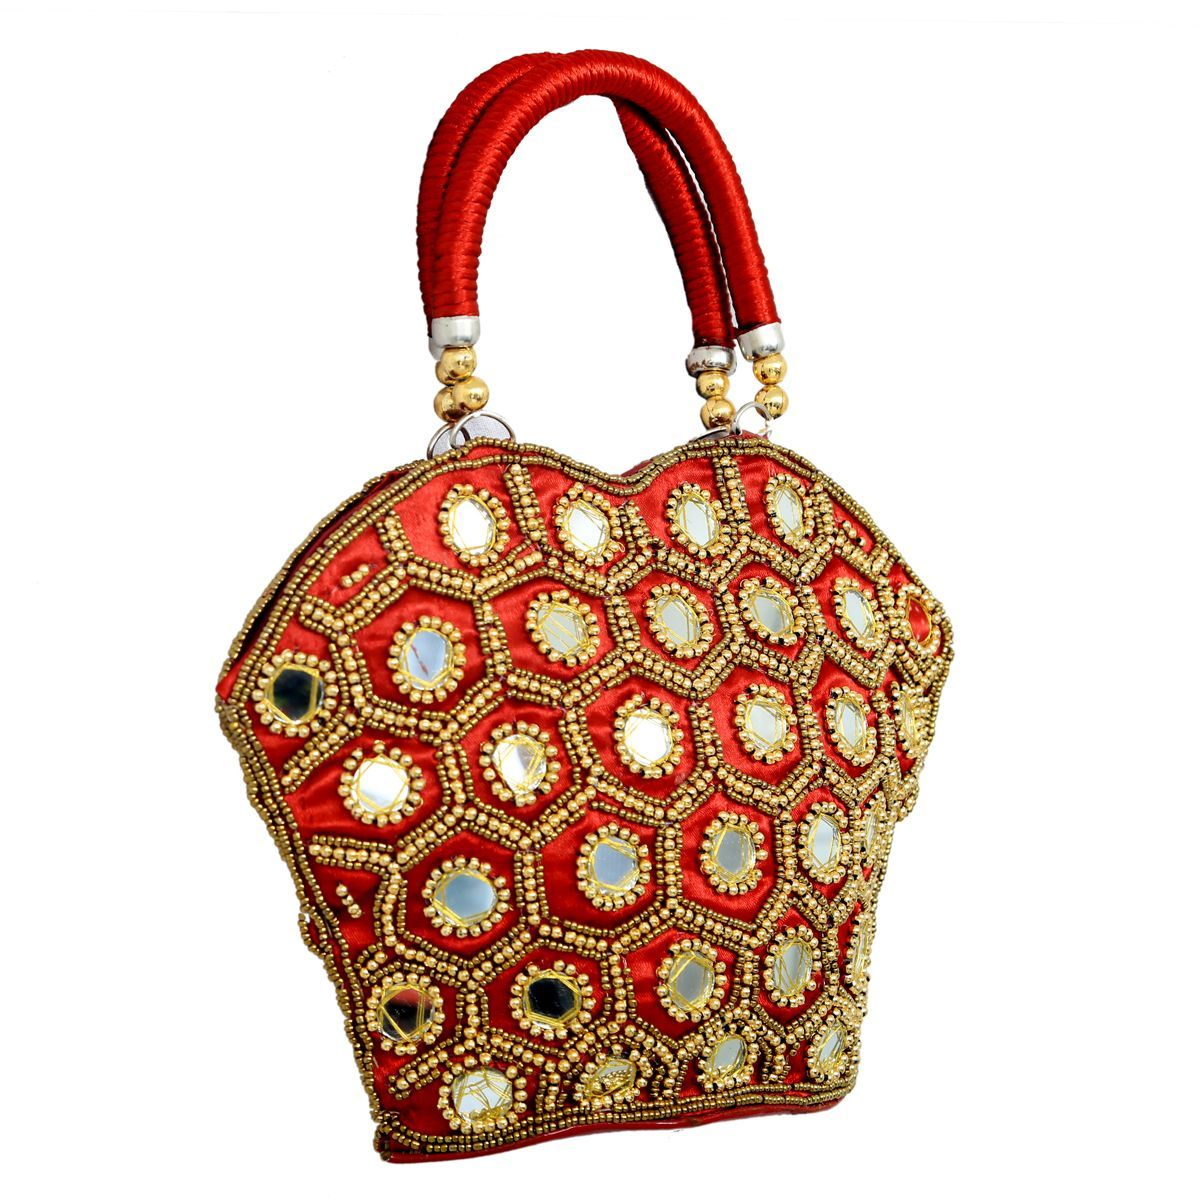 Kuber Industries™ Rajasthani Ethnic Mirror Work Handheld Bag,Small (Red) - BG13